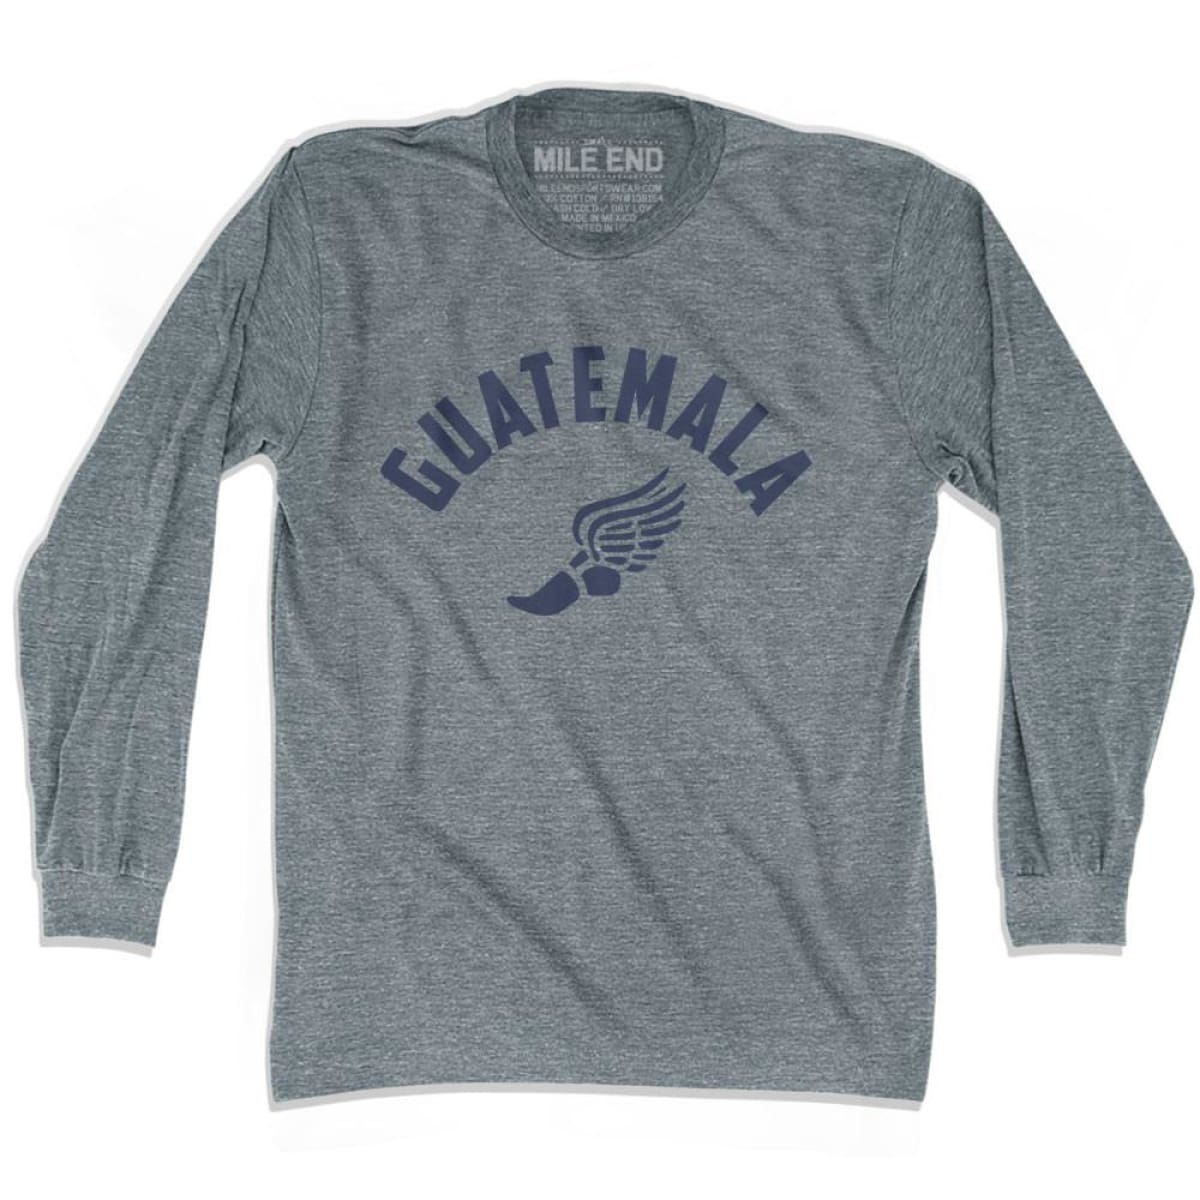 Guatemala Track Long Sleeve T-shirt - Athletic Grey / Adult X-Small - Mile End Track